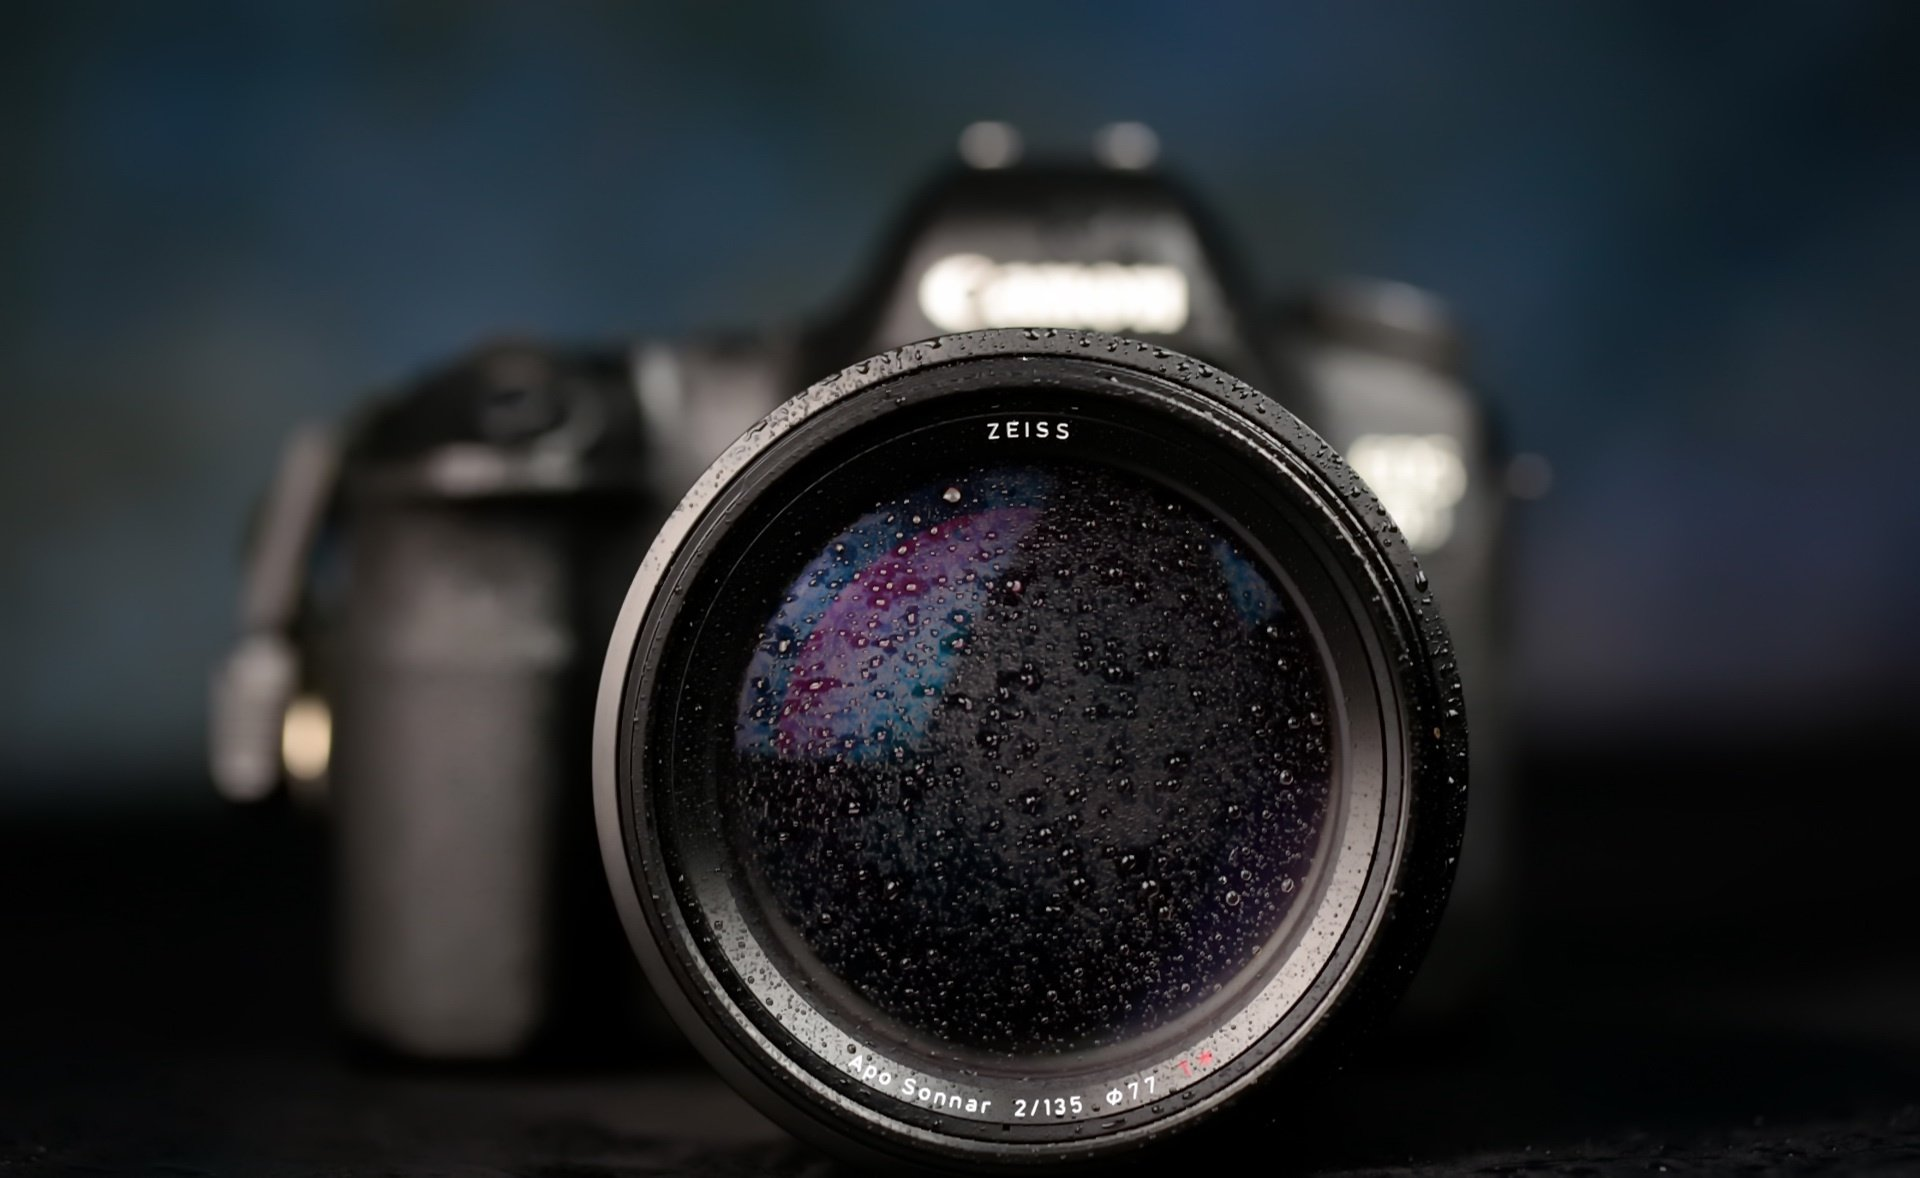 319 camera hd wallpapers | backgrounds - wallpaper abyss